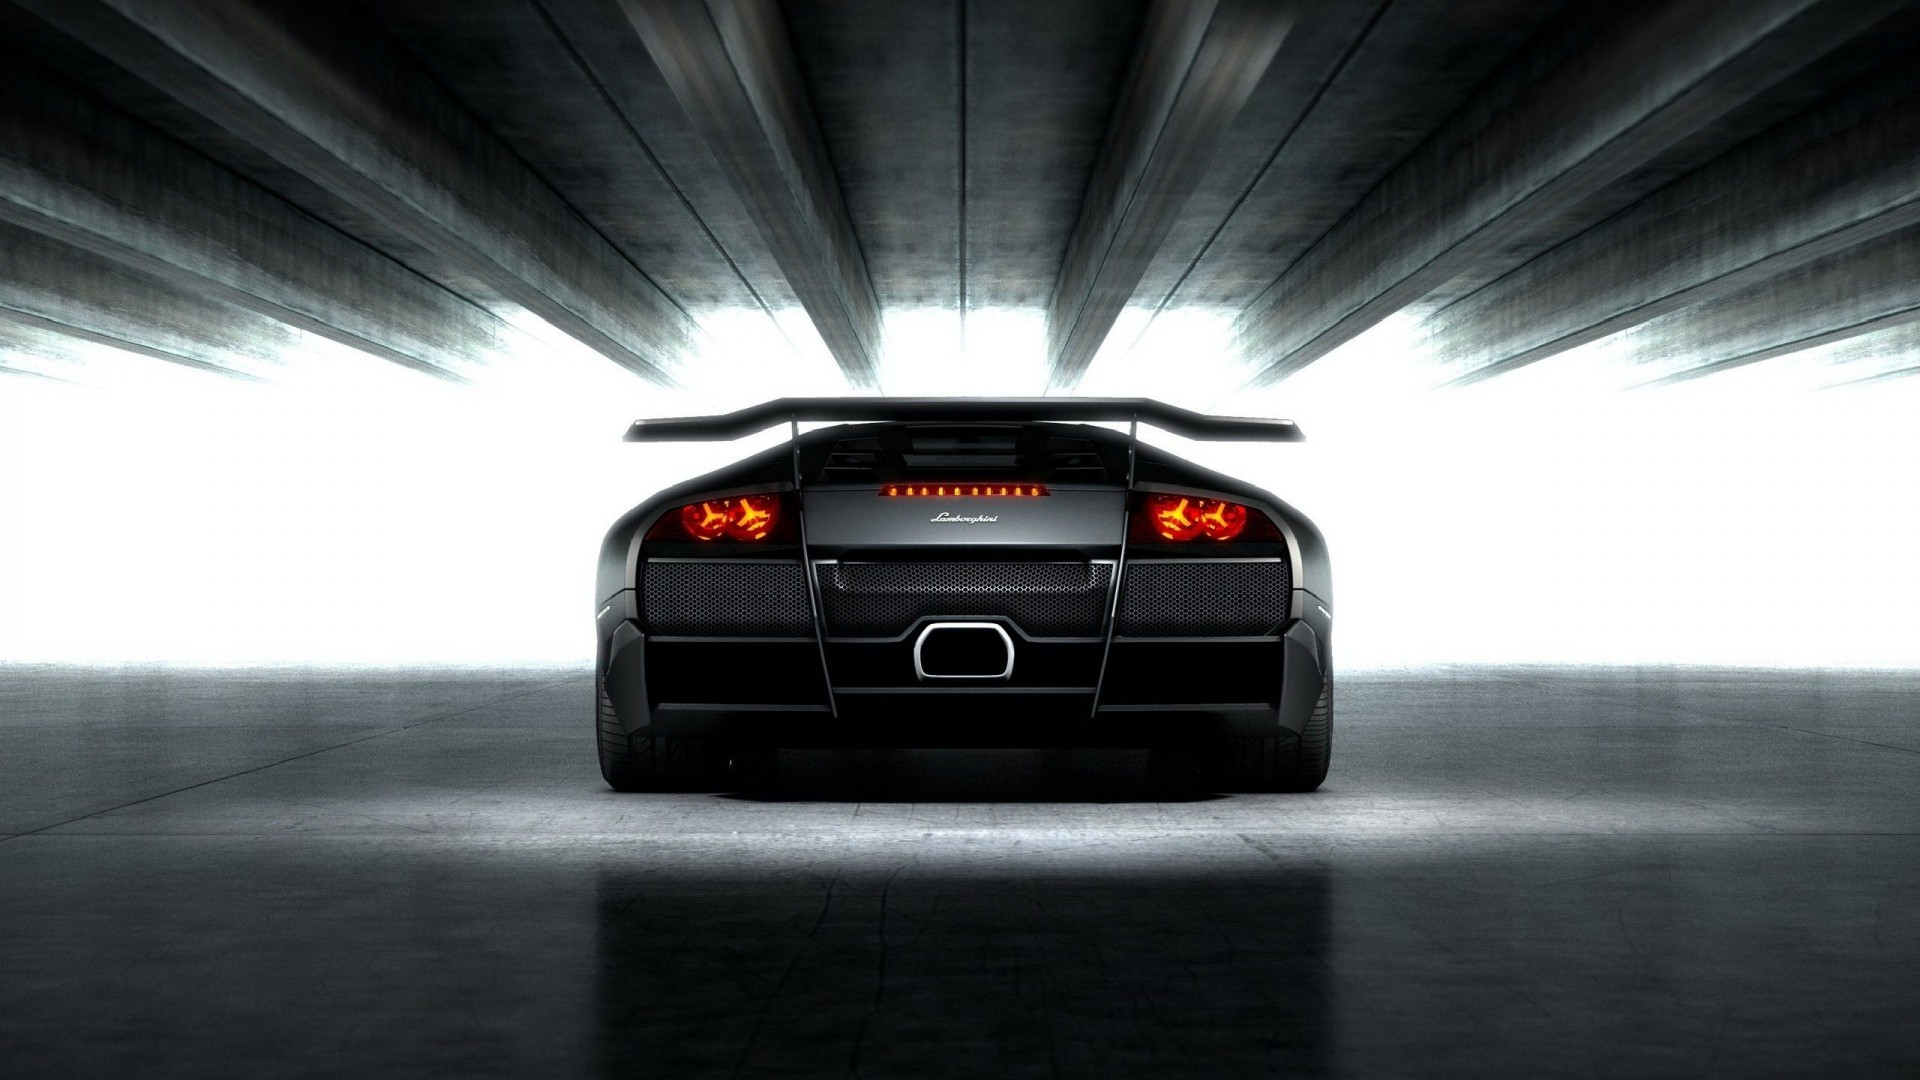 Cars Wallpaper Set 5 Awesome Wallpapers